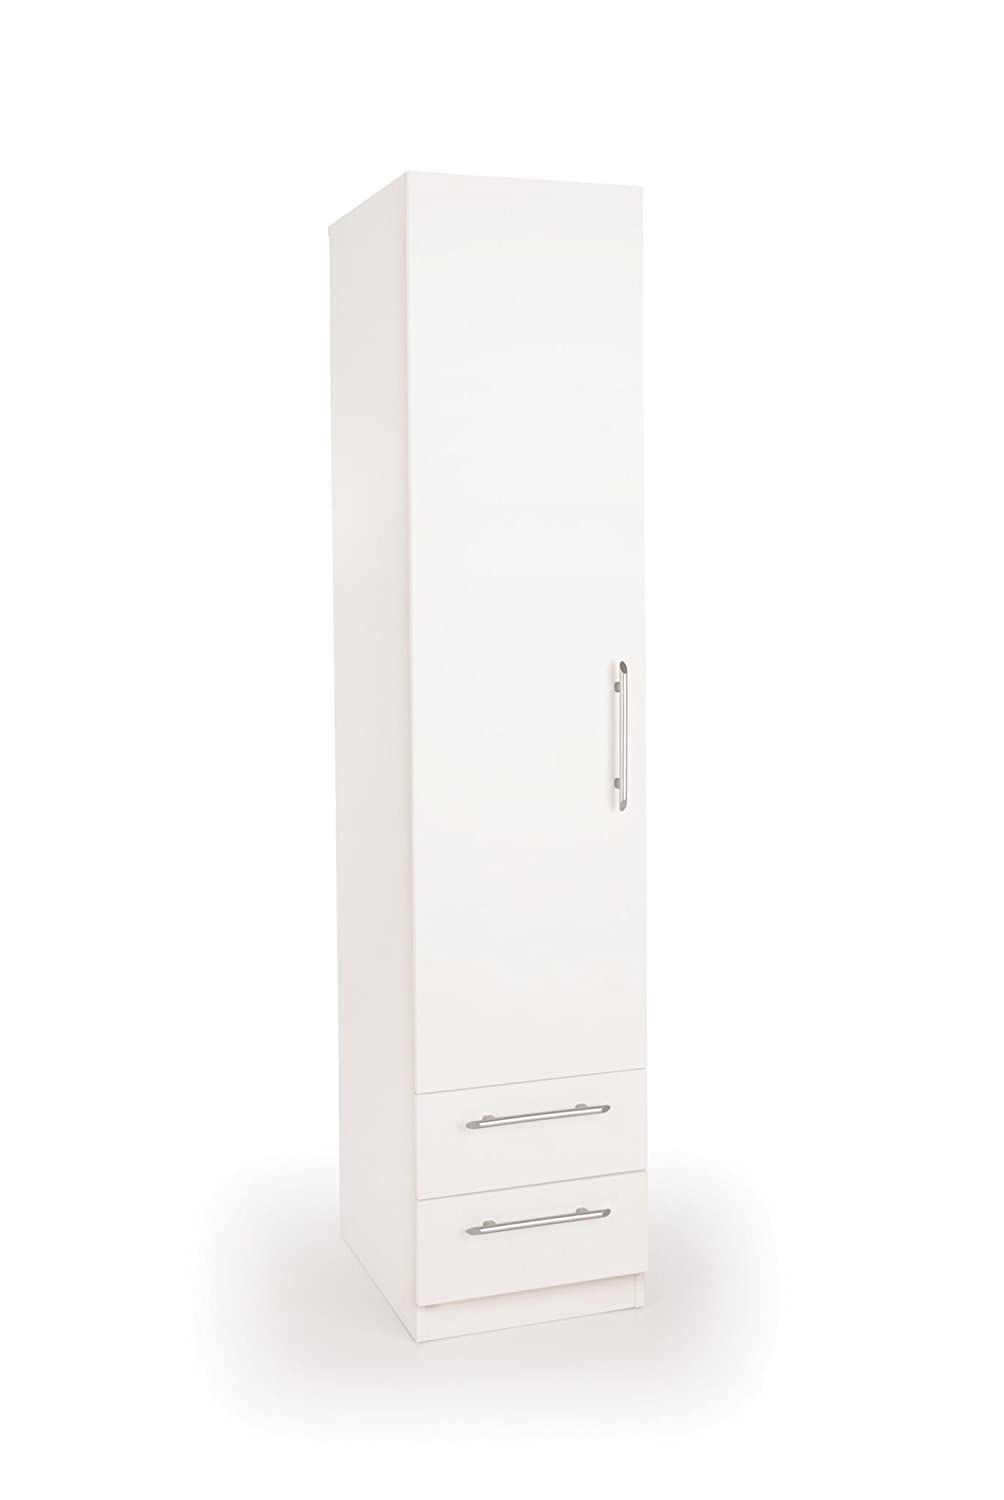 Acton 1-Door 2-Drawer Wardrobe, Wood, White Harmony H151217